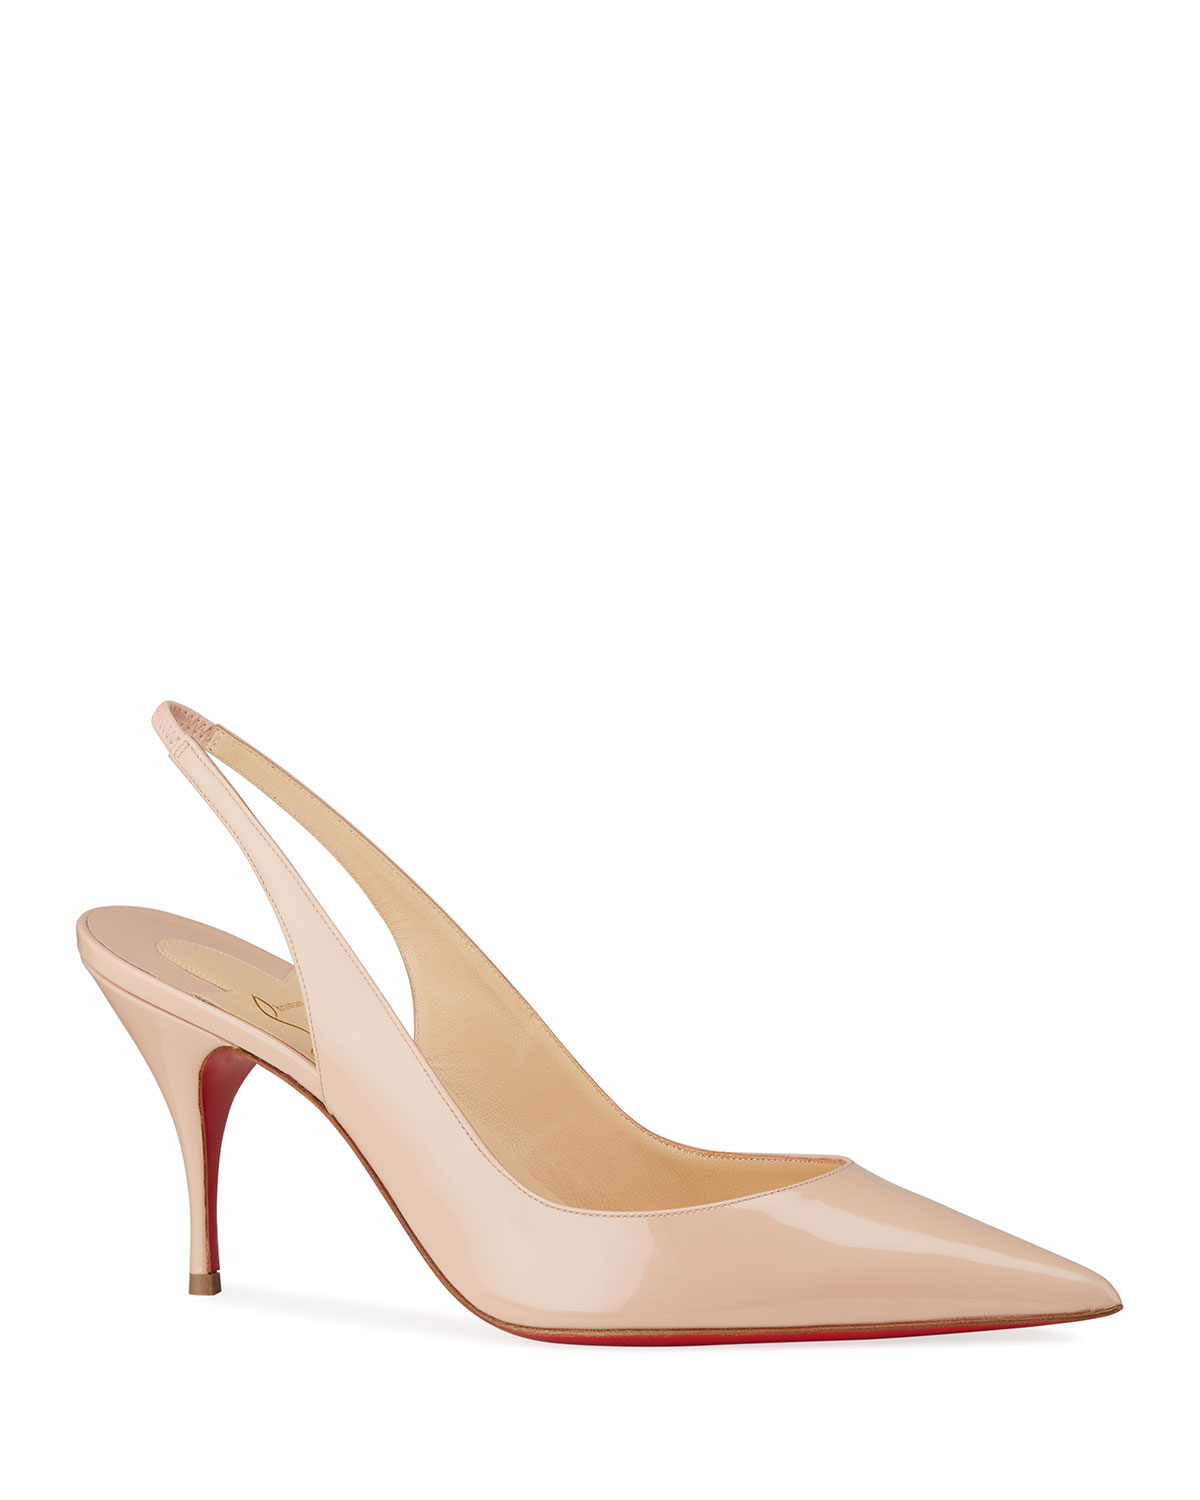 c2a1c473196 Christian Louboutin Clare Slingback Red Sole Pumps